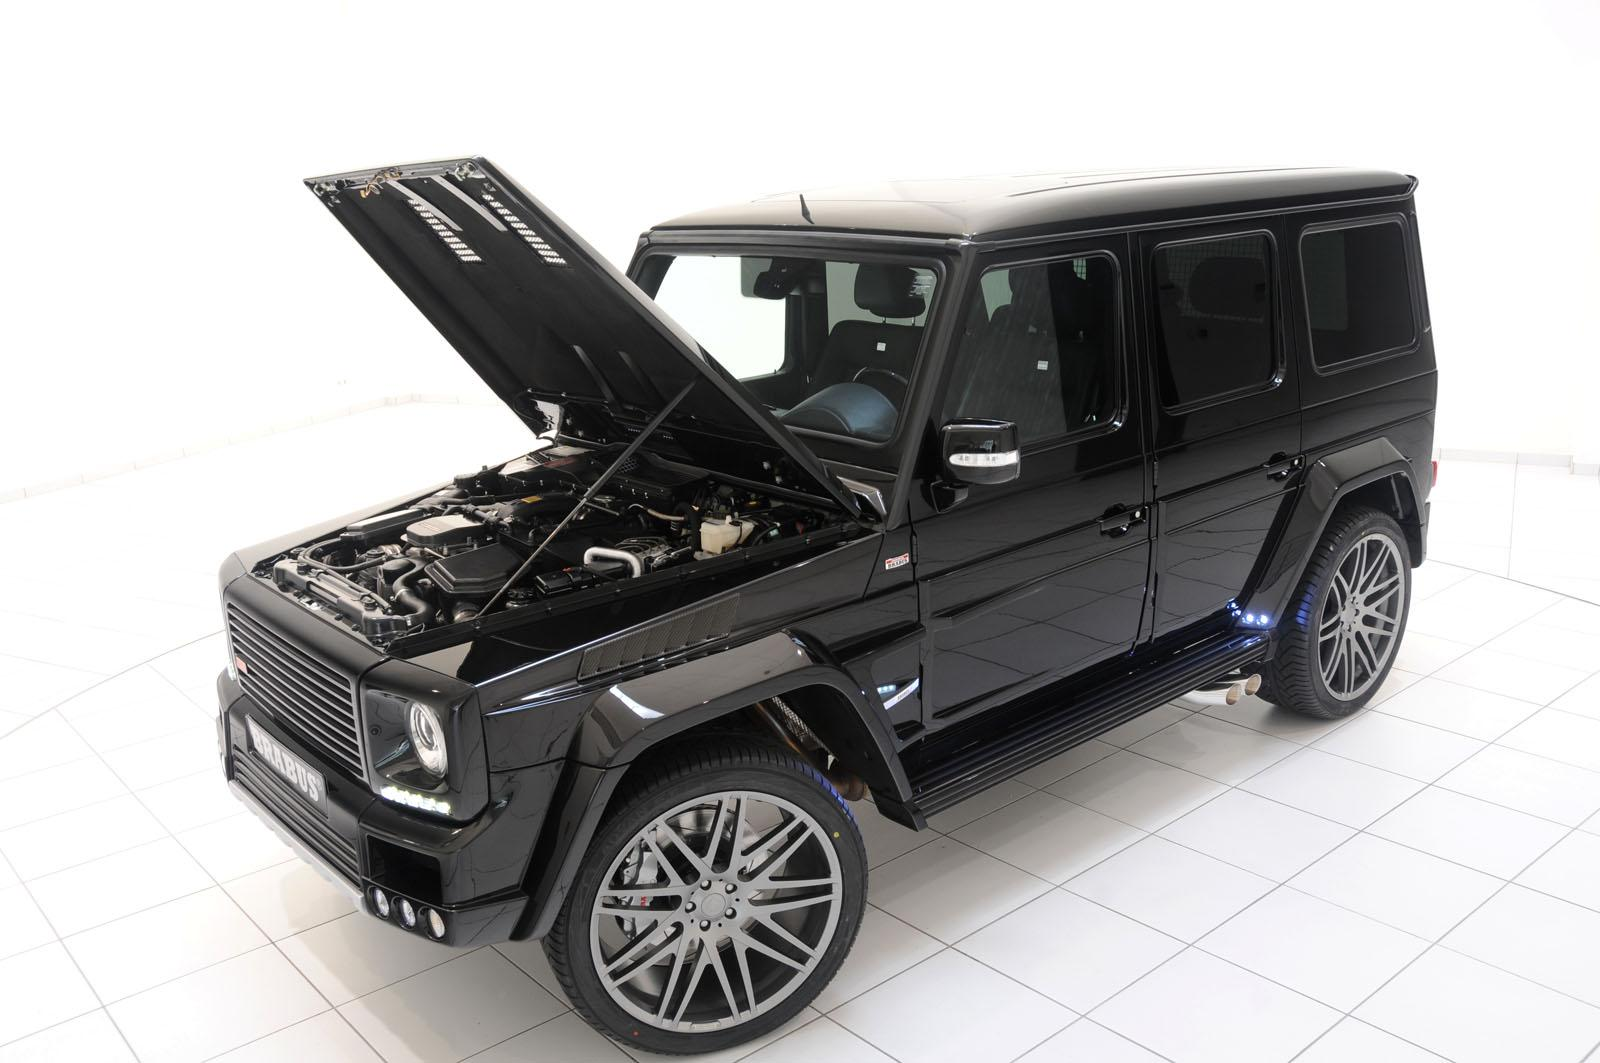 Mercedes-Benz G-Class engine #4